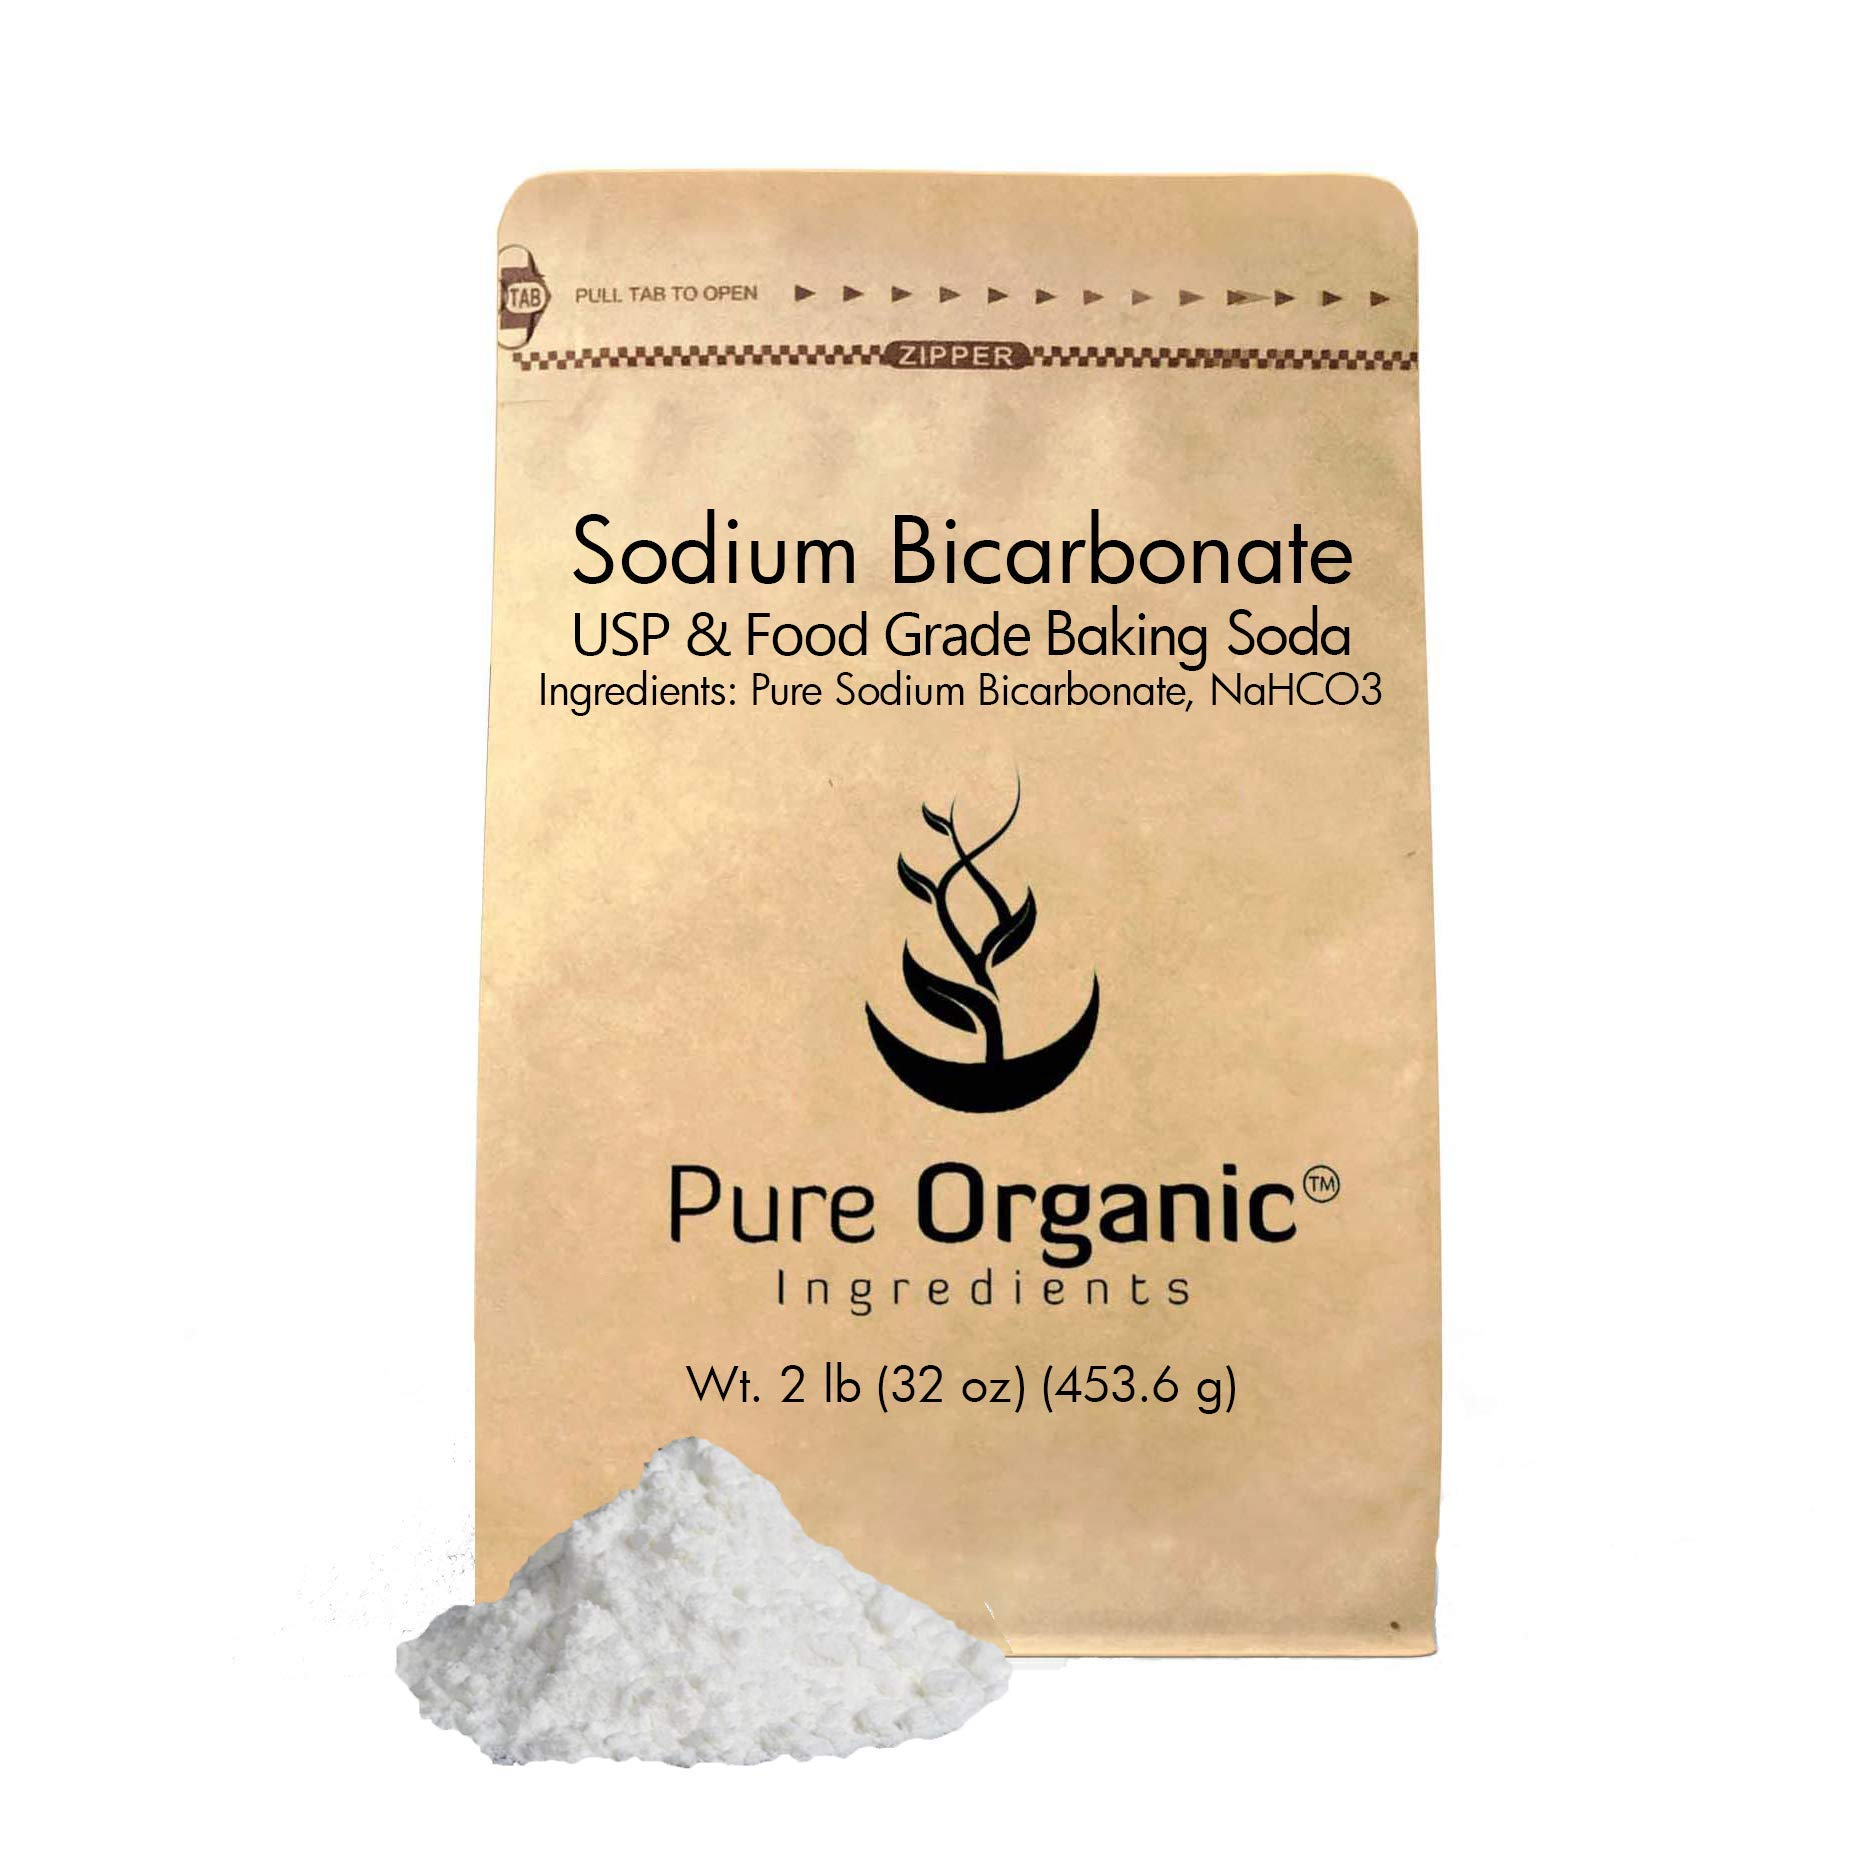 Sodium Bicarbonate, Baking Soda, by Pure Organic Ingredients, 2 lb, Highest Purity, Food Grade, Eco-Friendly Packaging